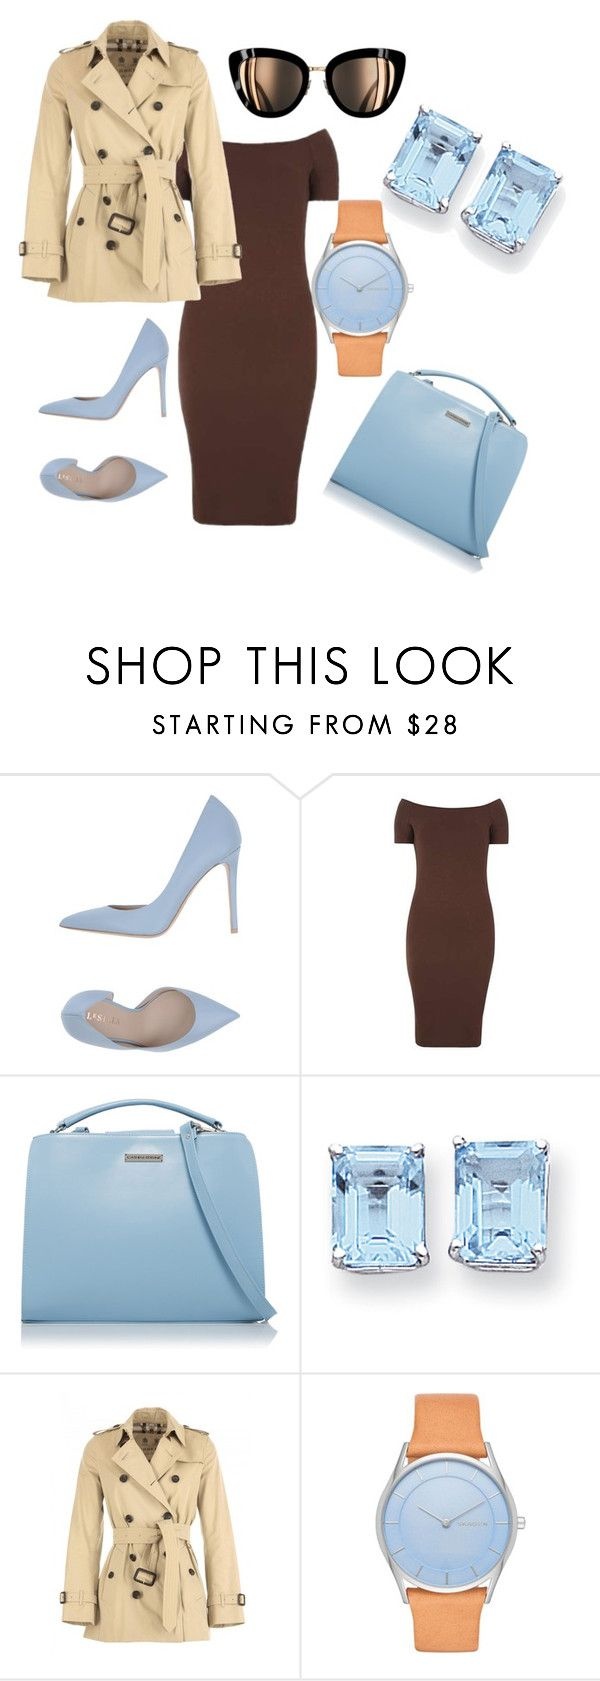 """Blue Chocolate"" by cmoligar on Polyvore featuring Le Silla, Dorothy Perkins, Kevin Jewelers, Burberry and Skagen"